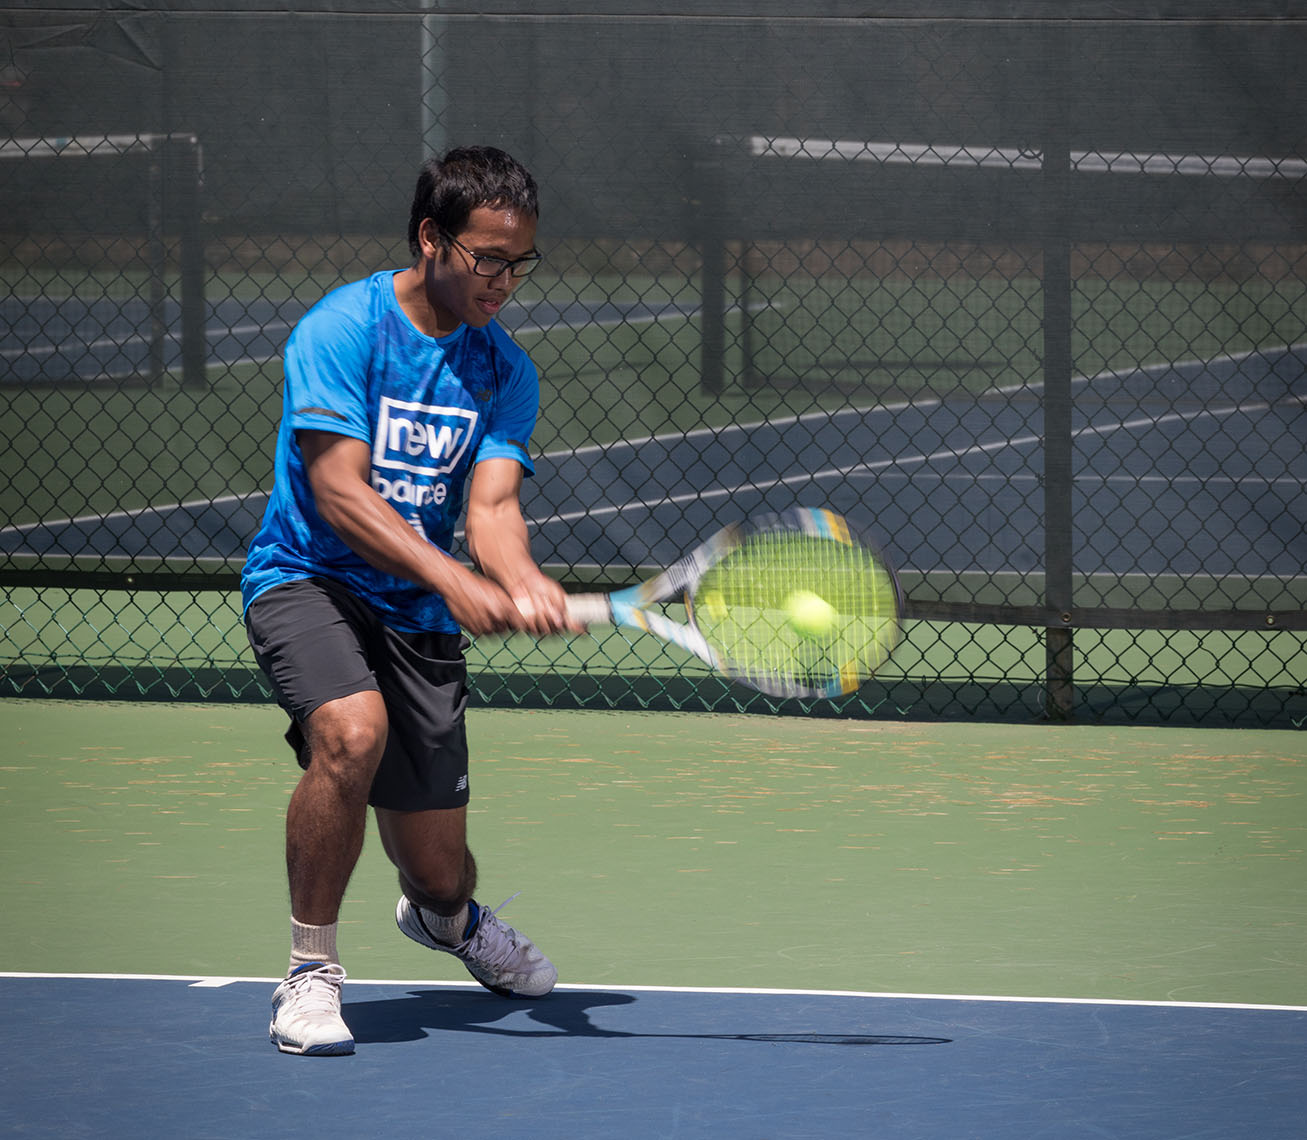 Young man strikes tennis ball on court with USTA New England